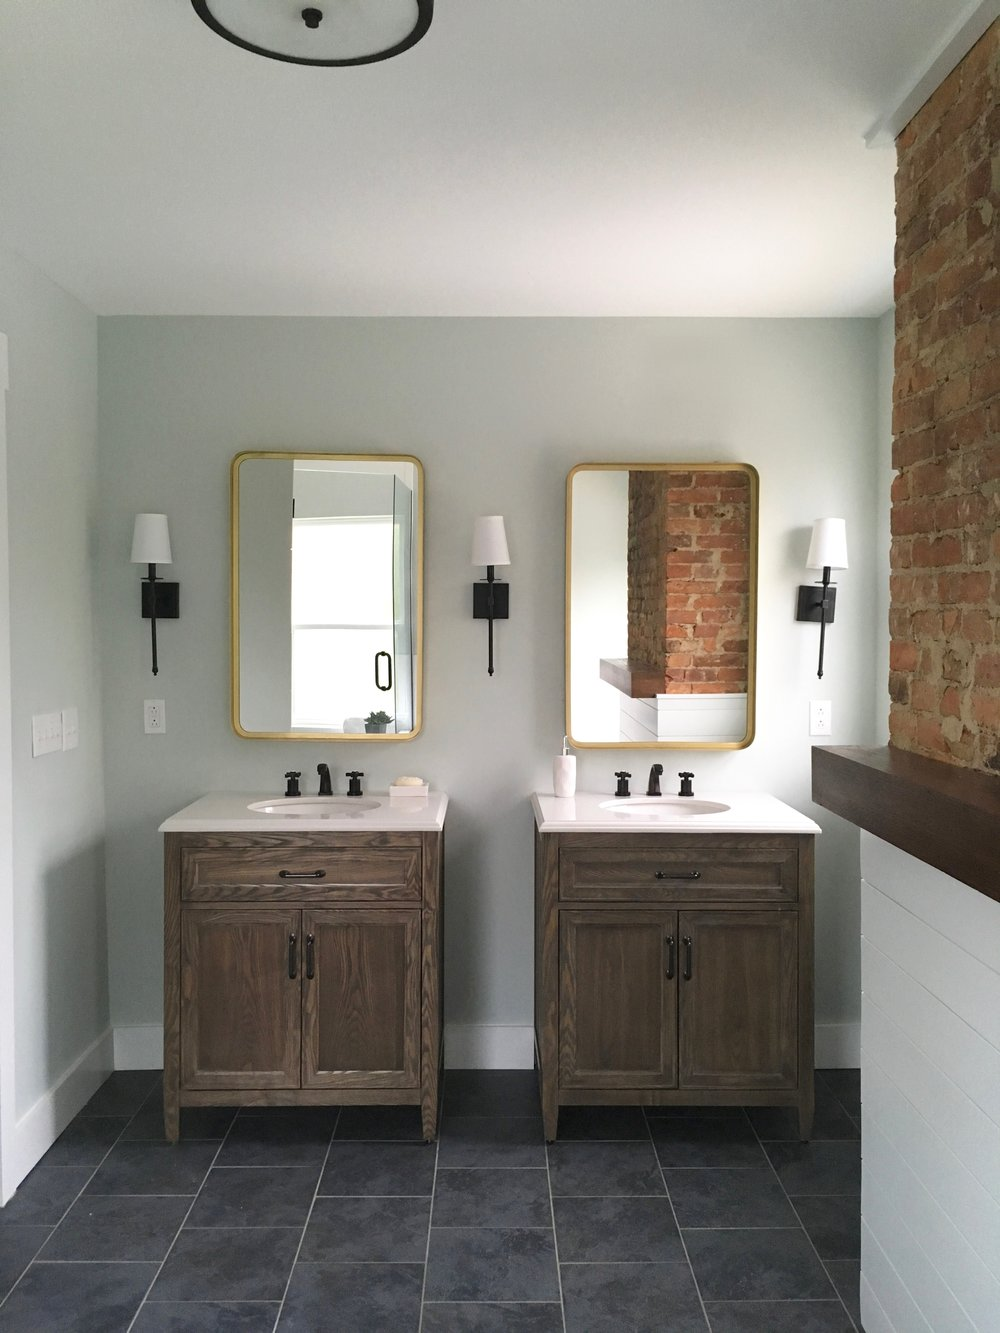 After: dual vanities create balance and symmetry. The glass door to the walk-in shower is visible in the left mirror.